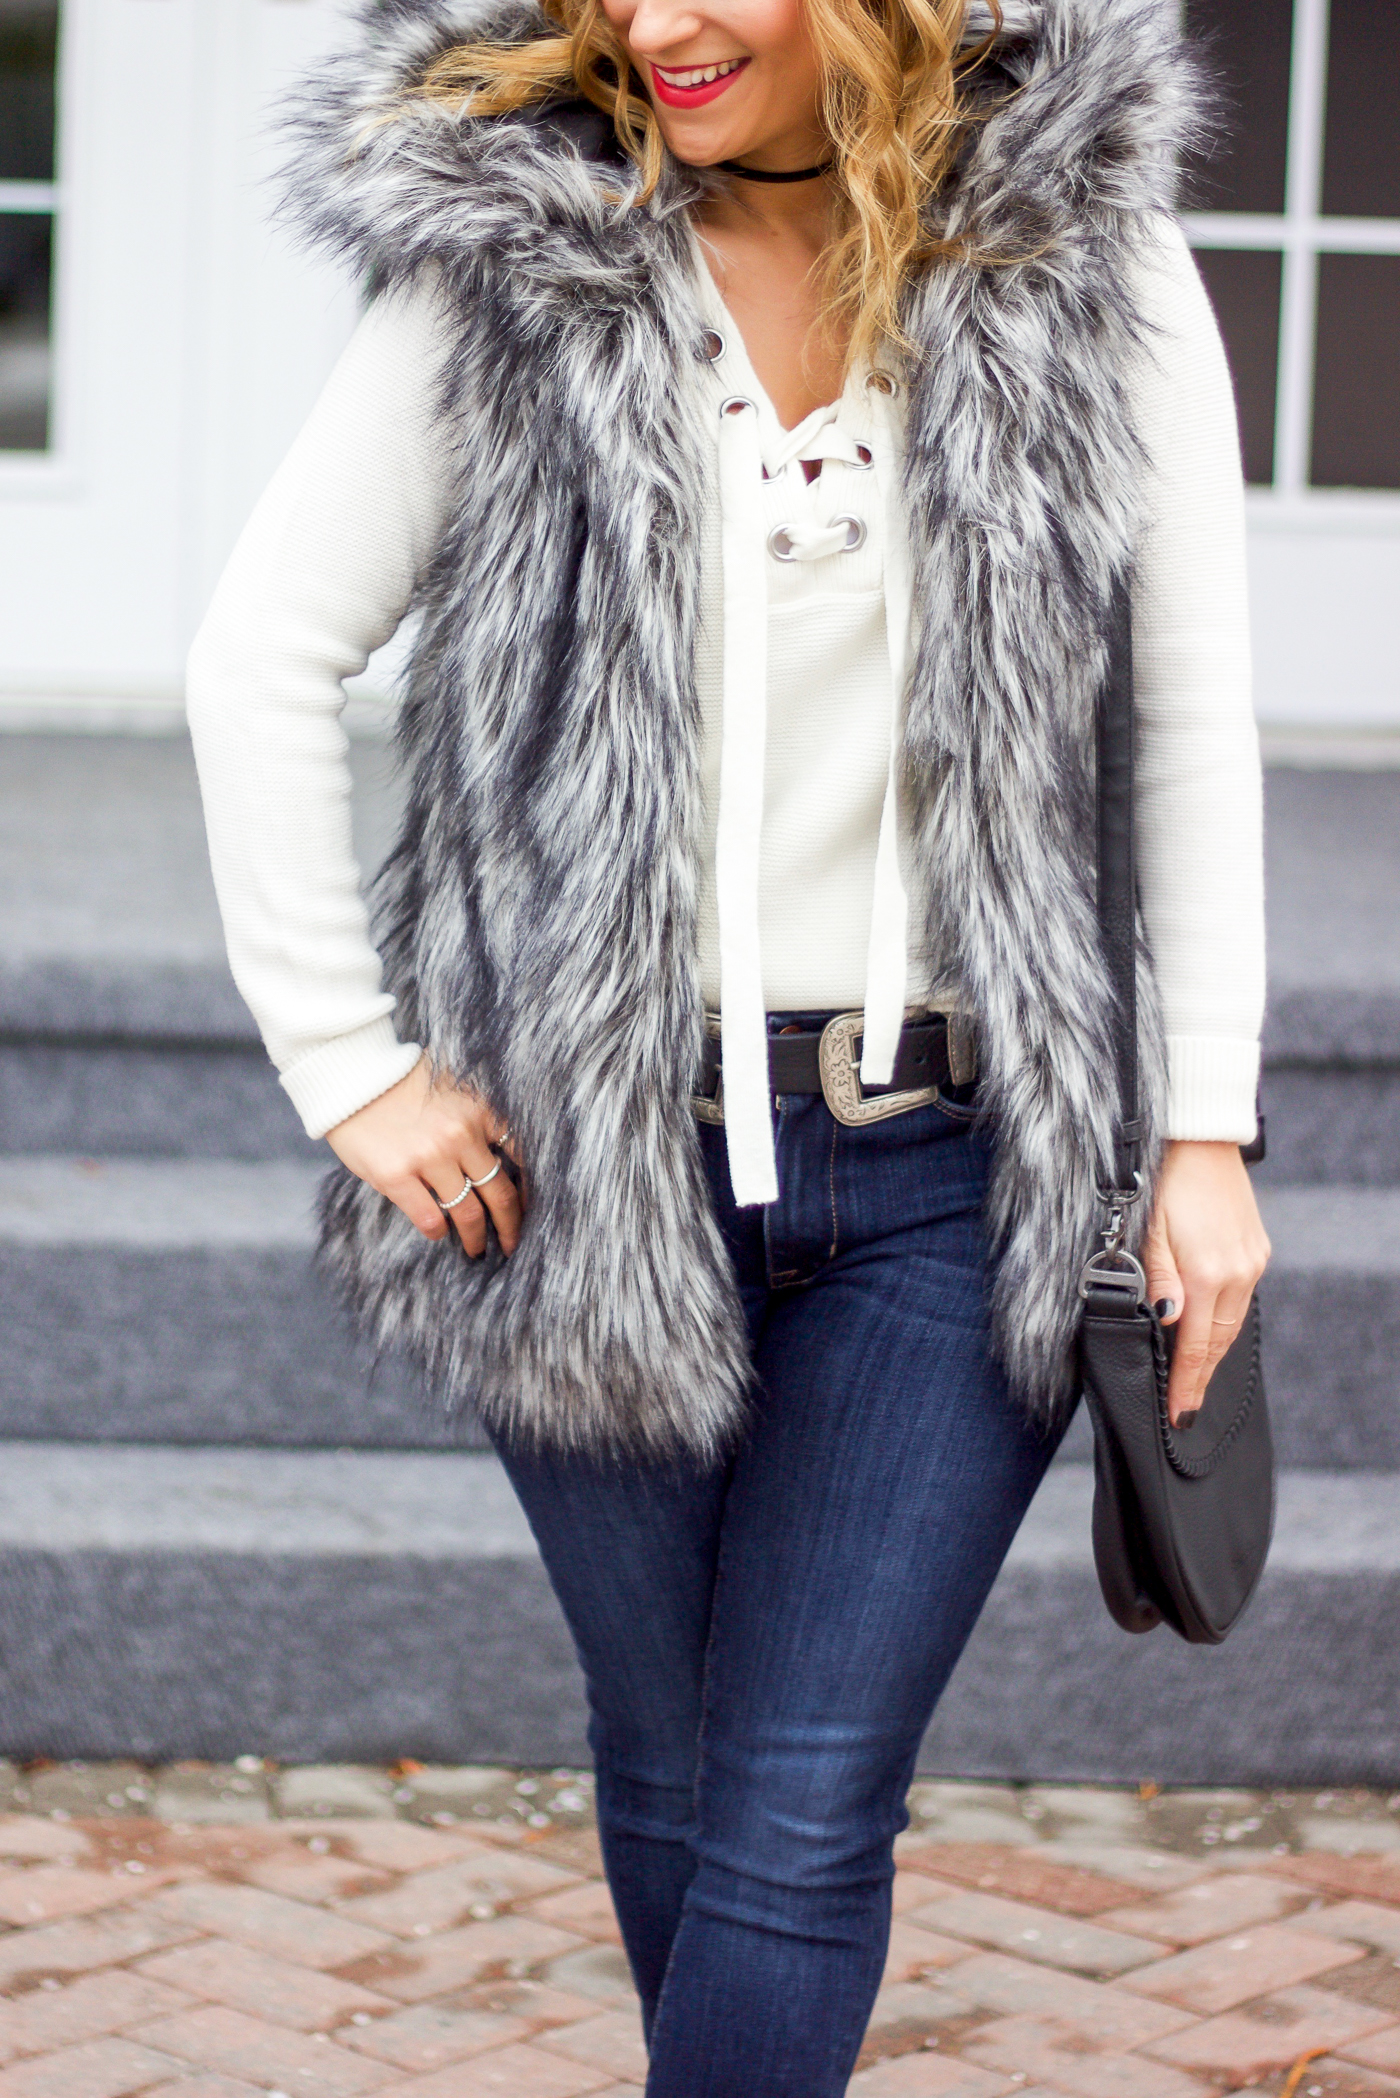 How to wear a great pair of Fidelity Denim jeans for the winter, like a fashion blogger